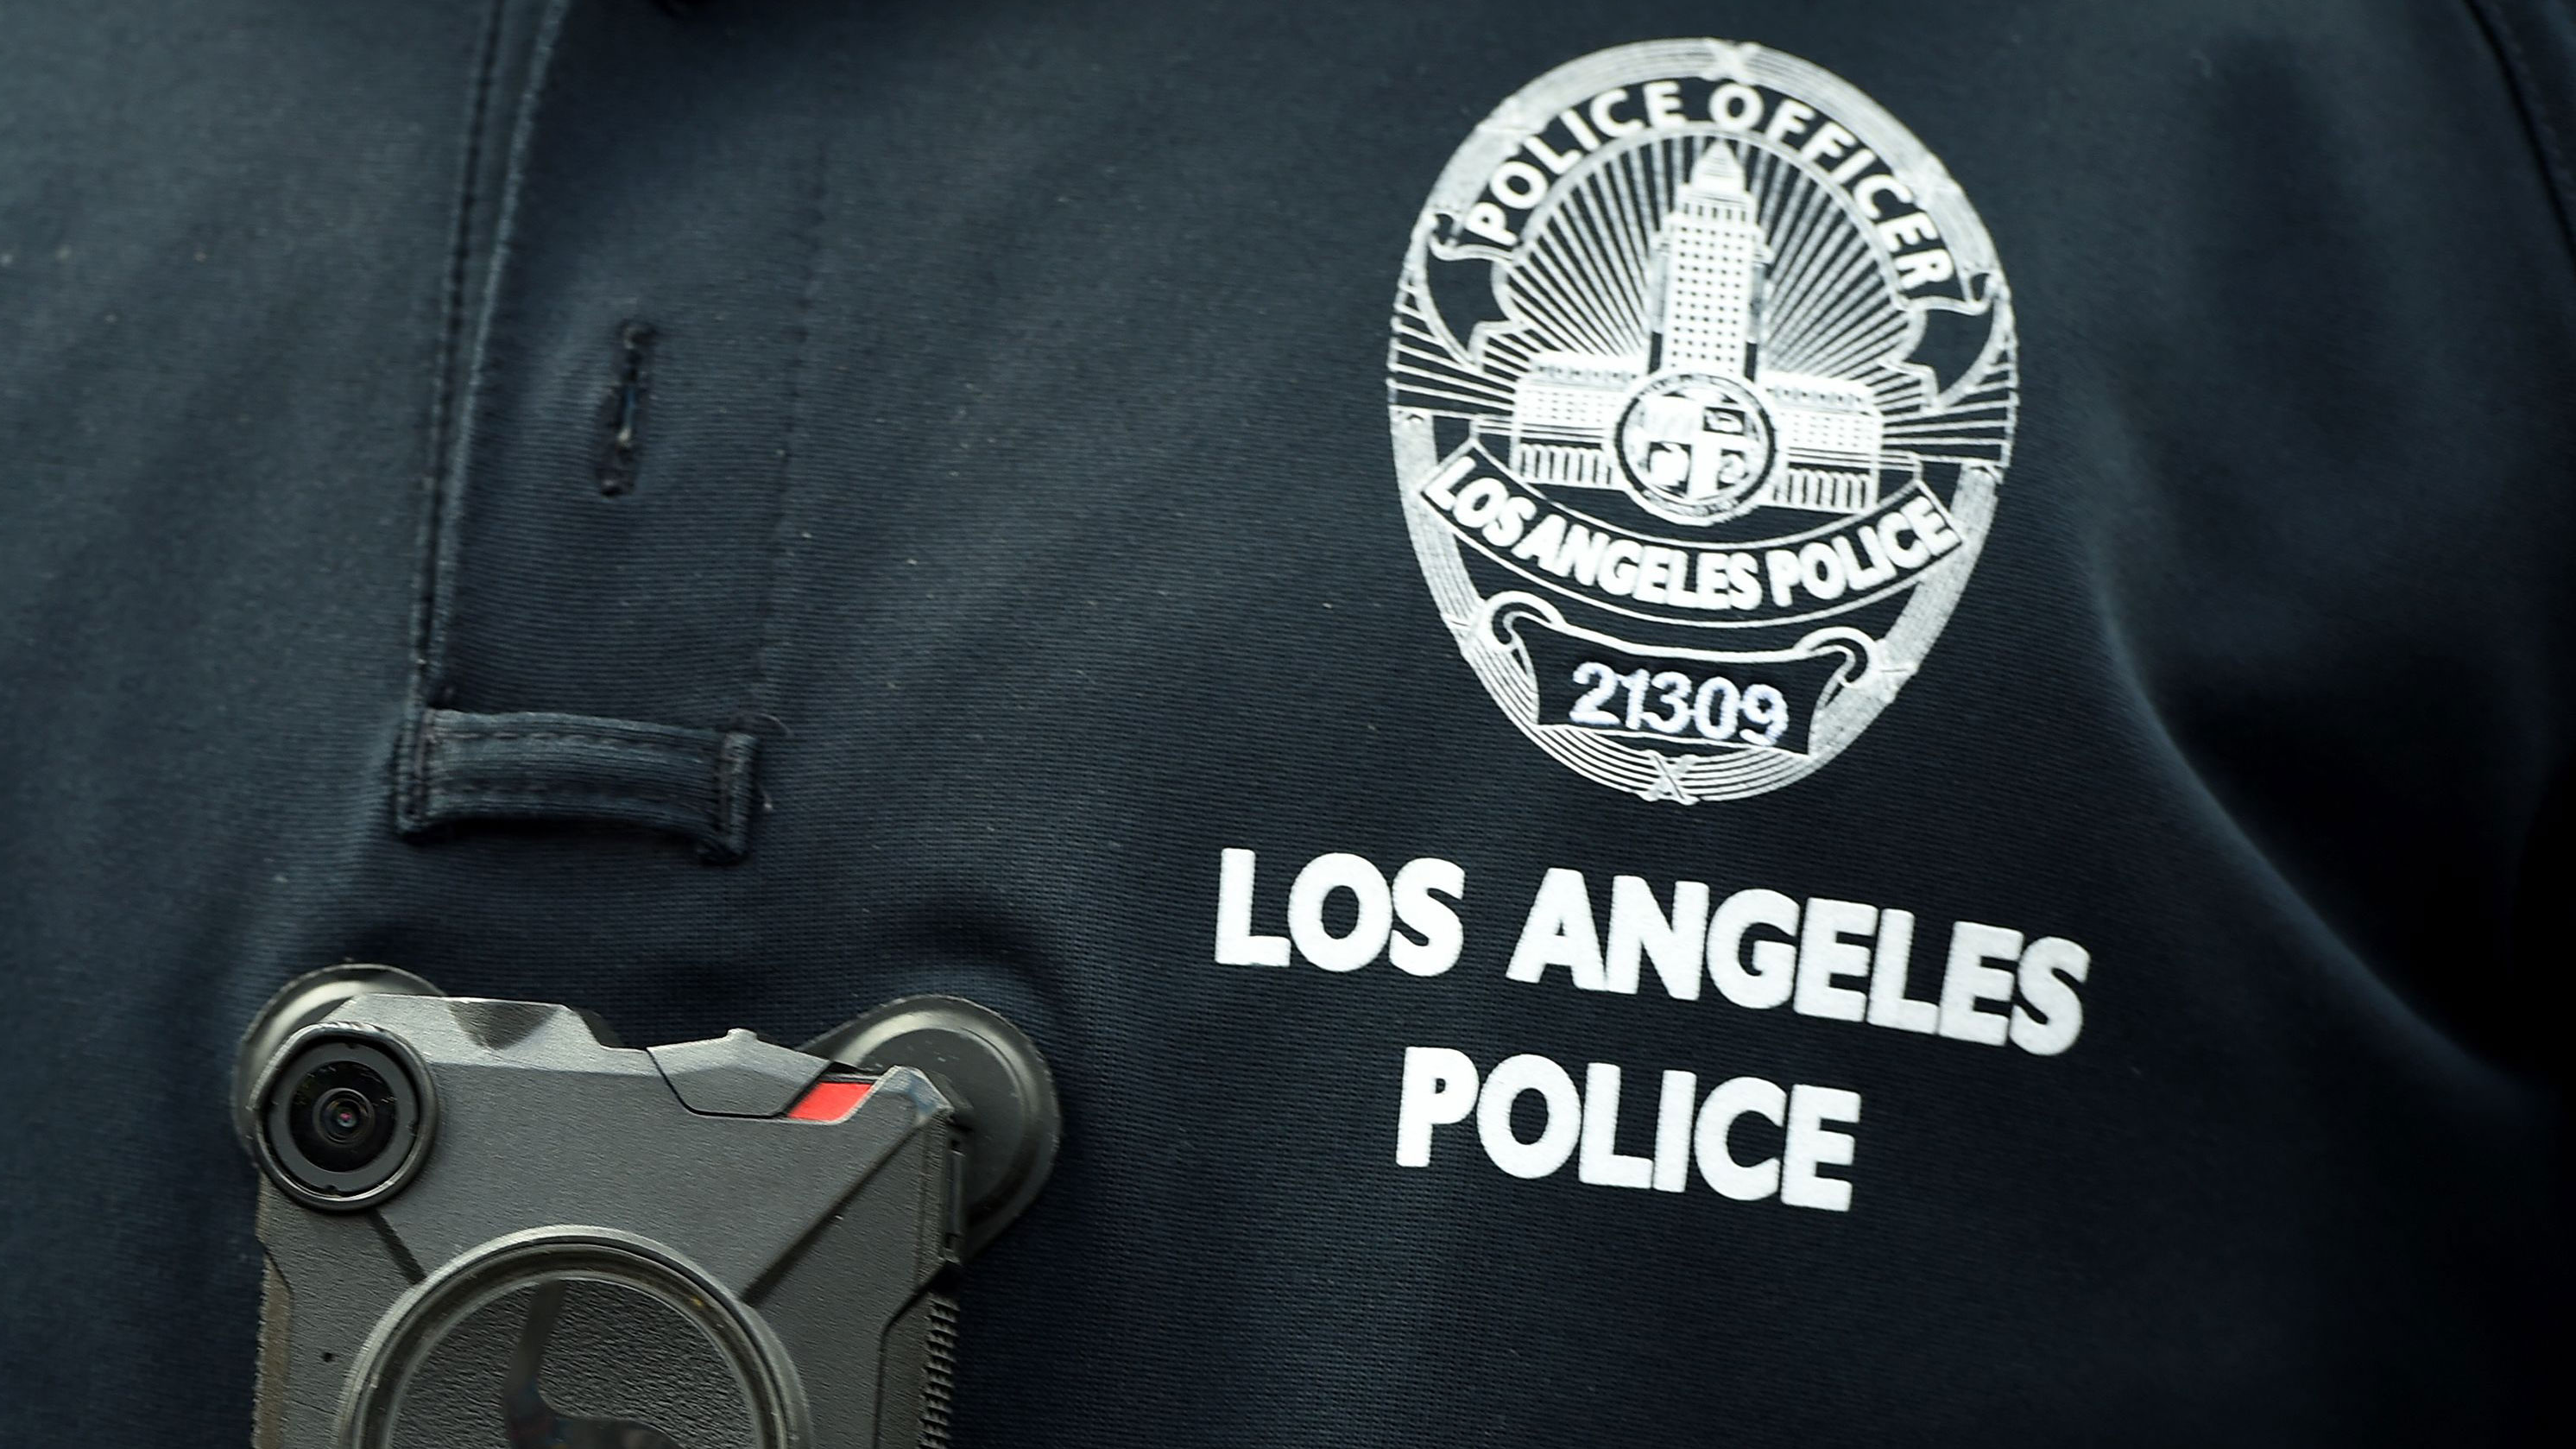 California pulls access to LAPD gang data in database after prosecutors say officers falsified records